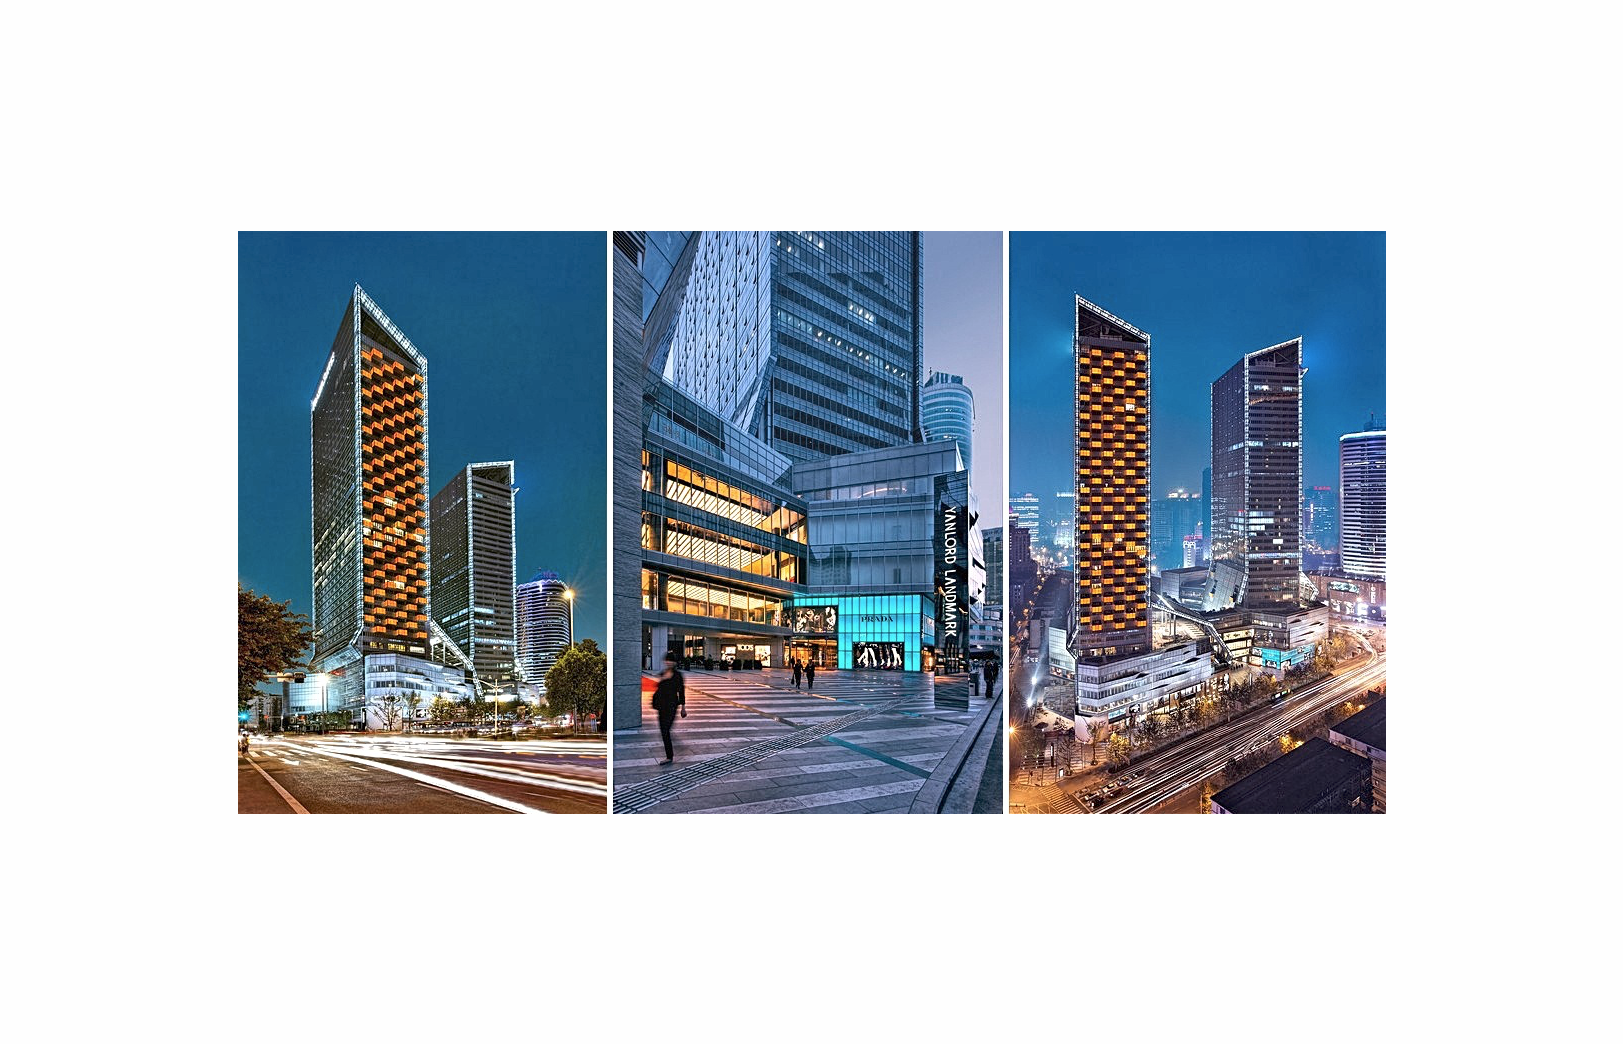 Architectural photography of mixed-use projects in China and Asia by Paul Dingman, architectural photographer serving China, Asia, Dubai, and the Middle East.